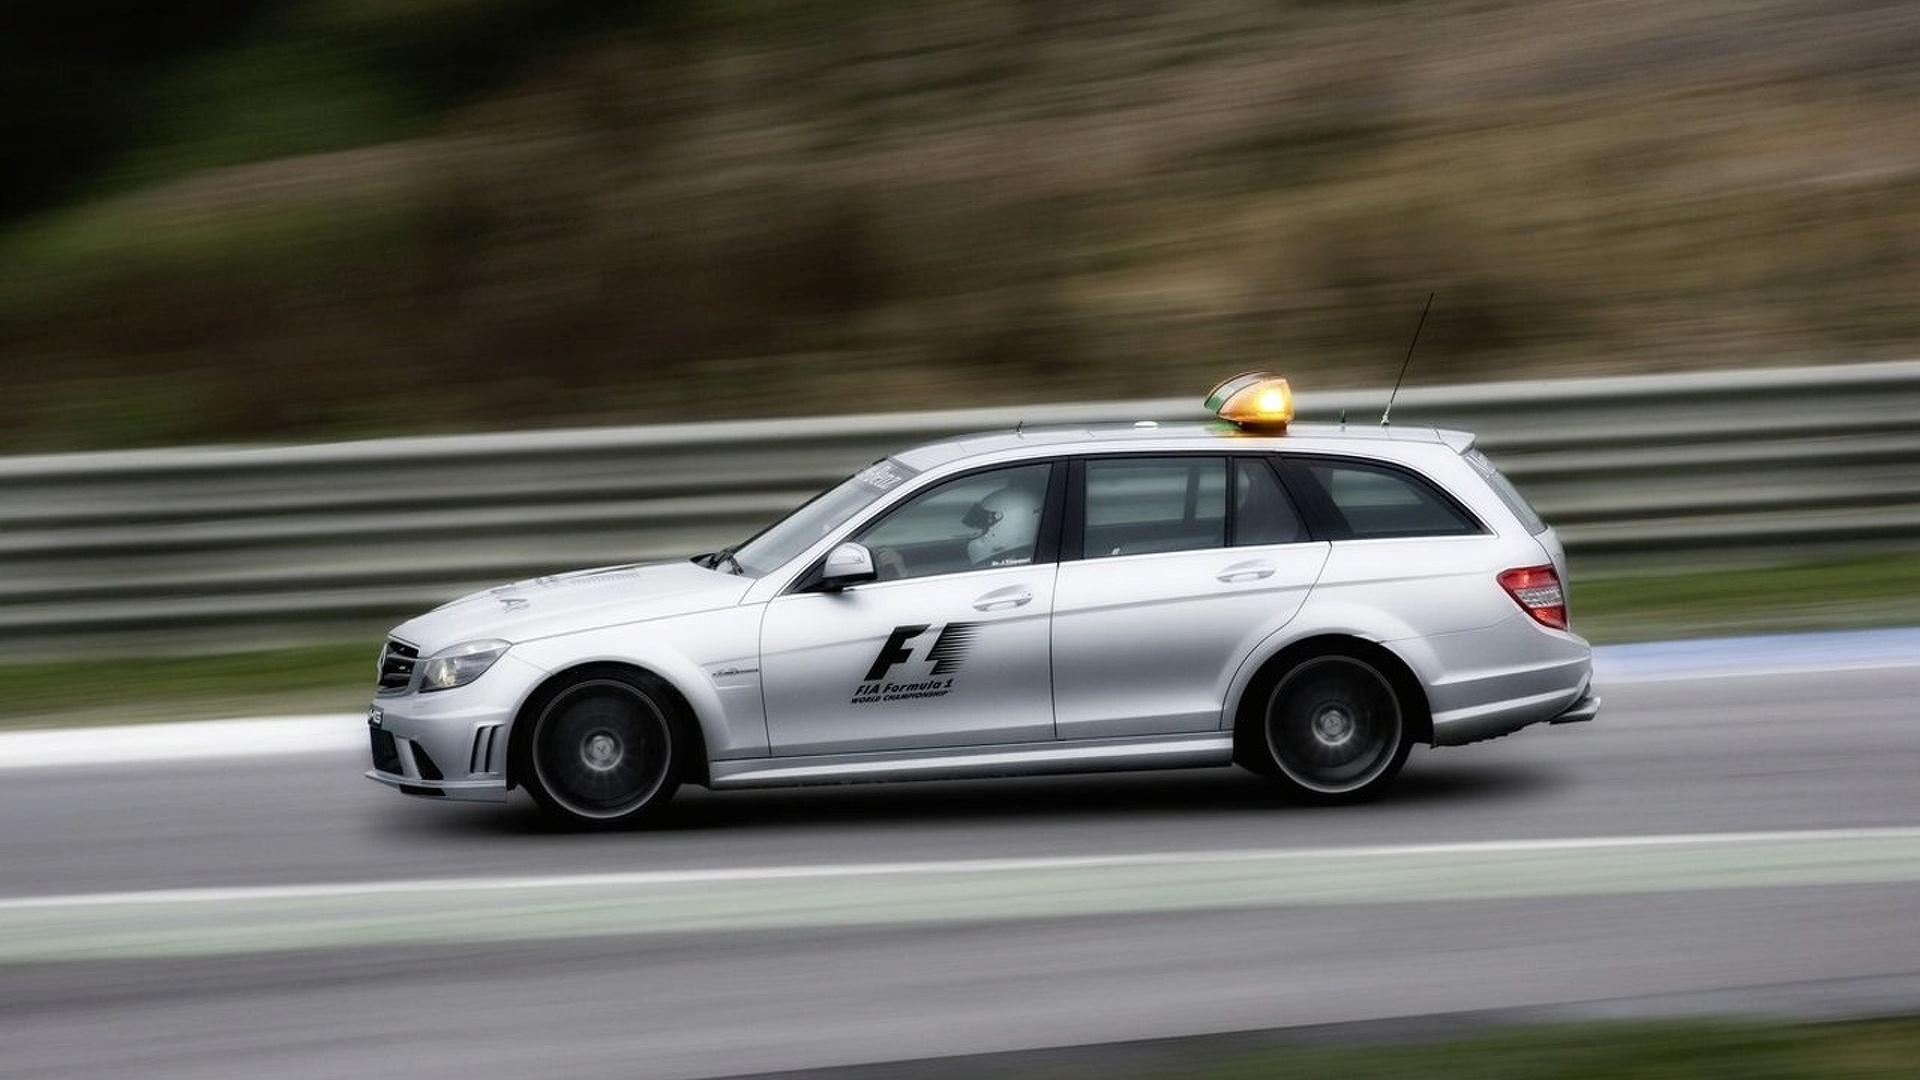 New full-time driver for F1 medical car